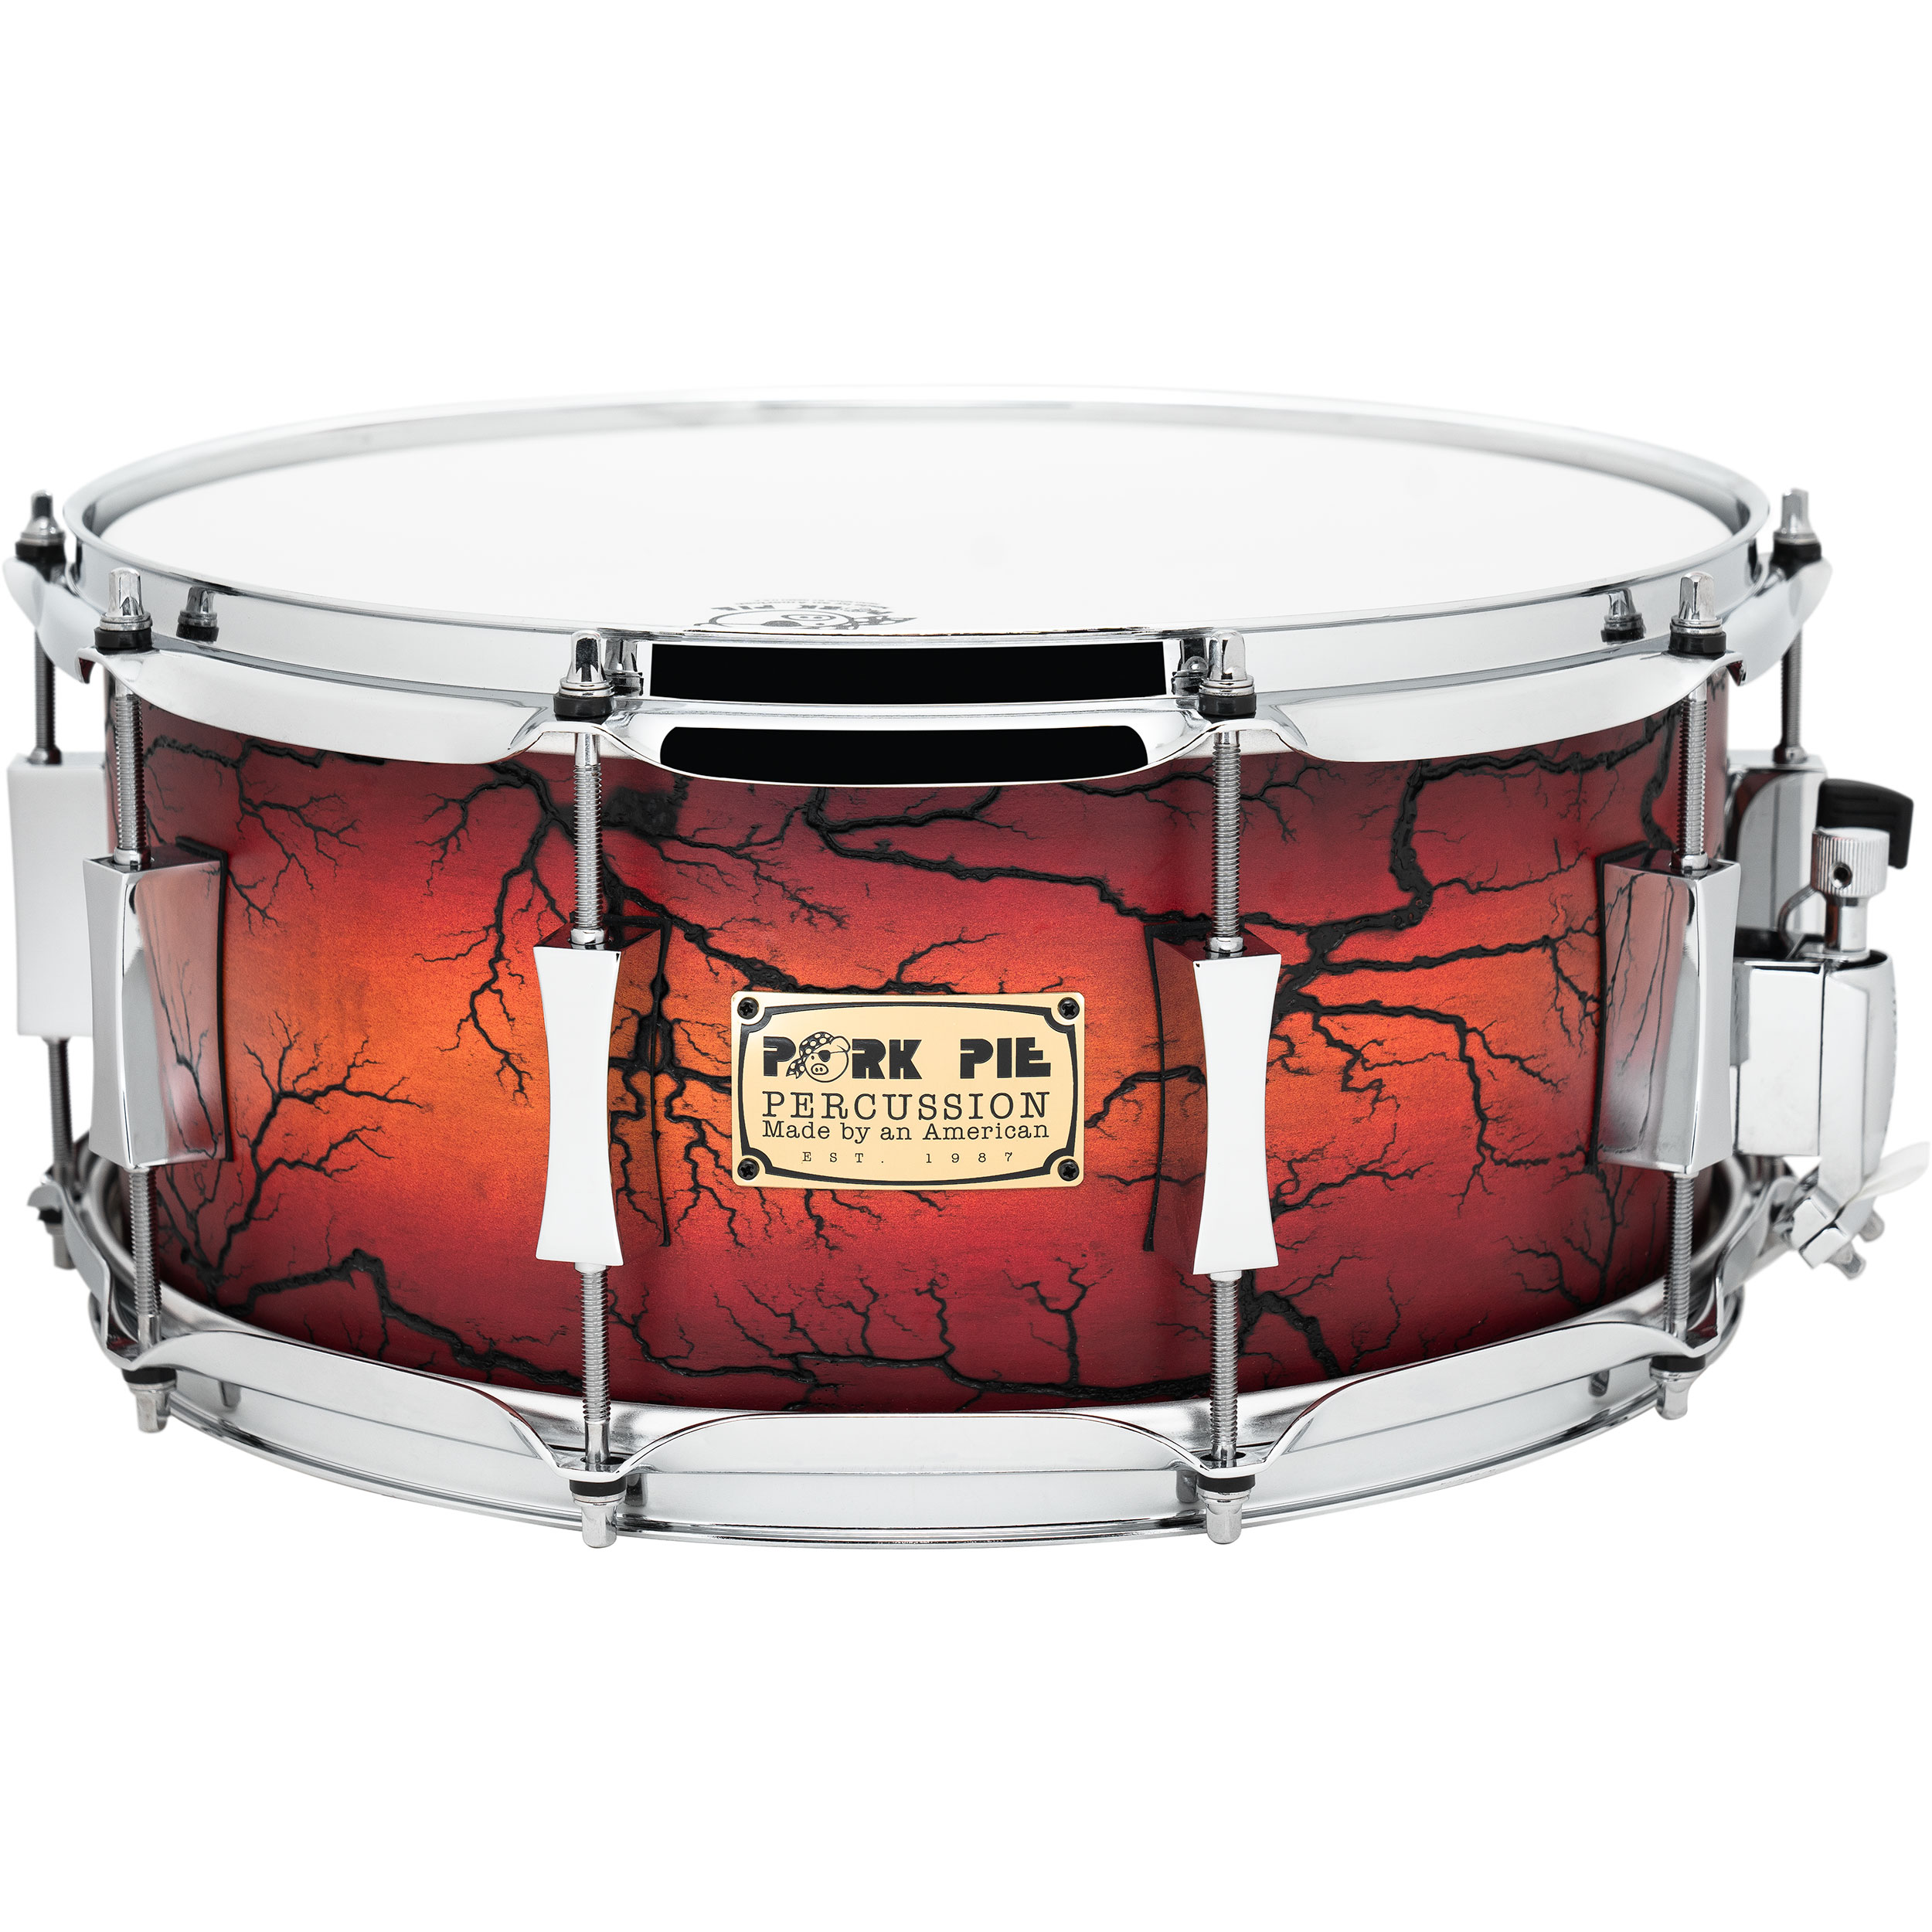 "Pork Pie Percussion 6.5"" x 14"" Snare Drum in Electric Natural"